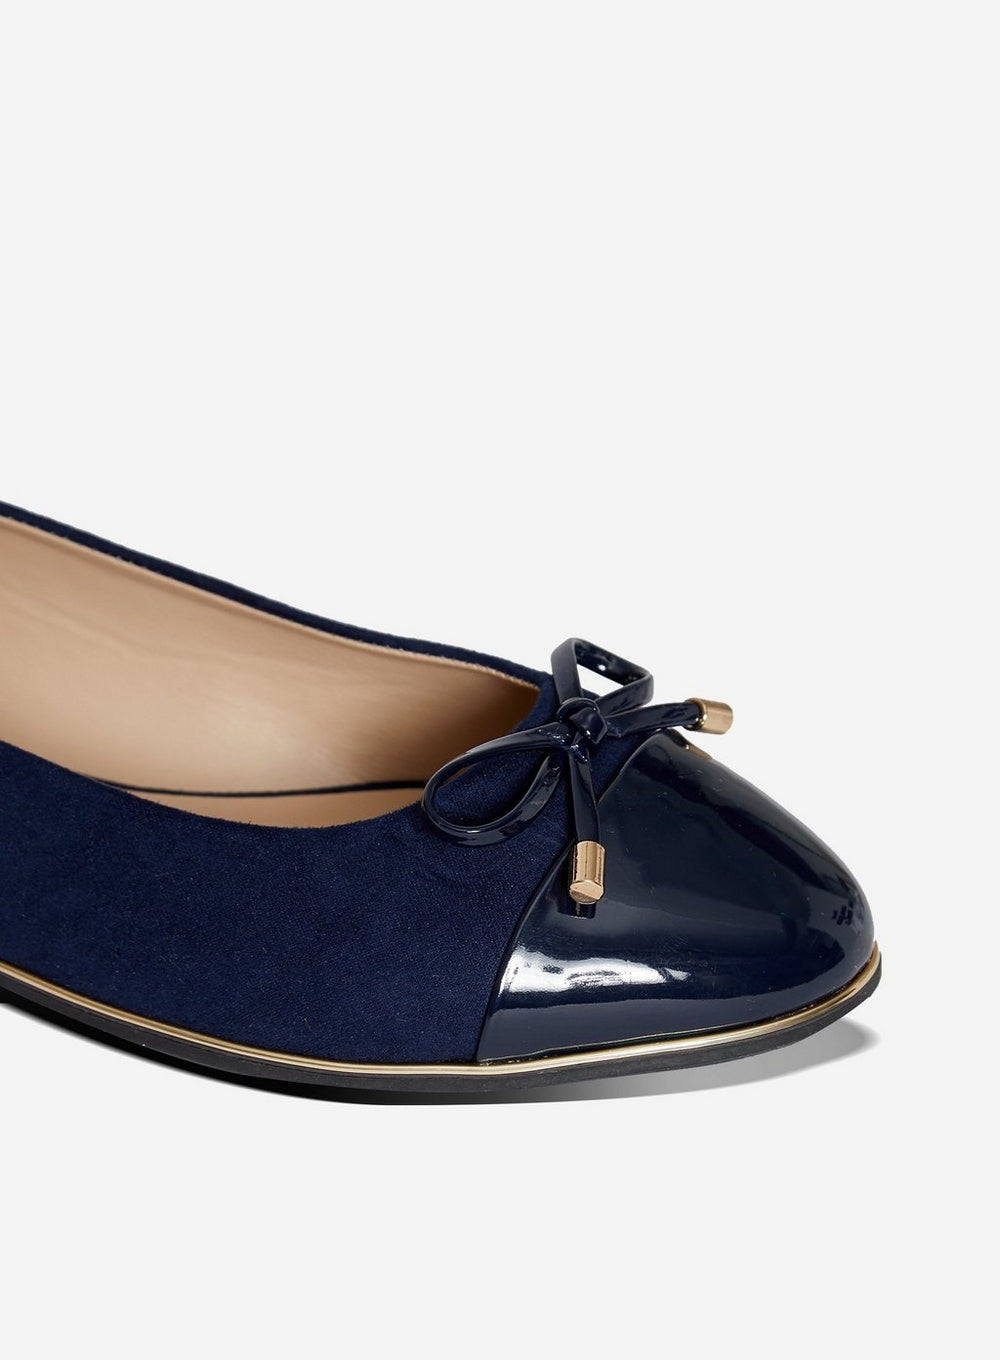 DOROTHY PERKINS NAVY PINE FLAT SHOES